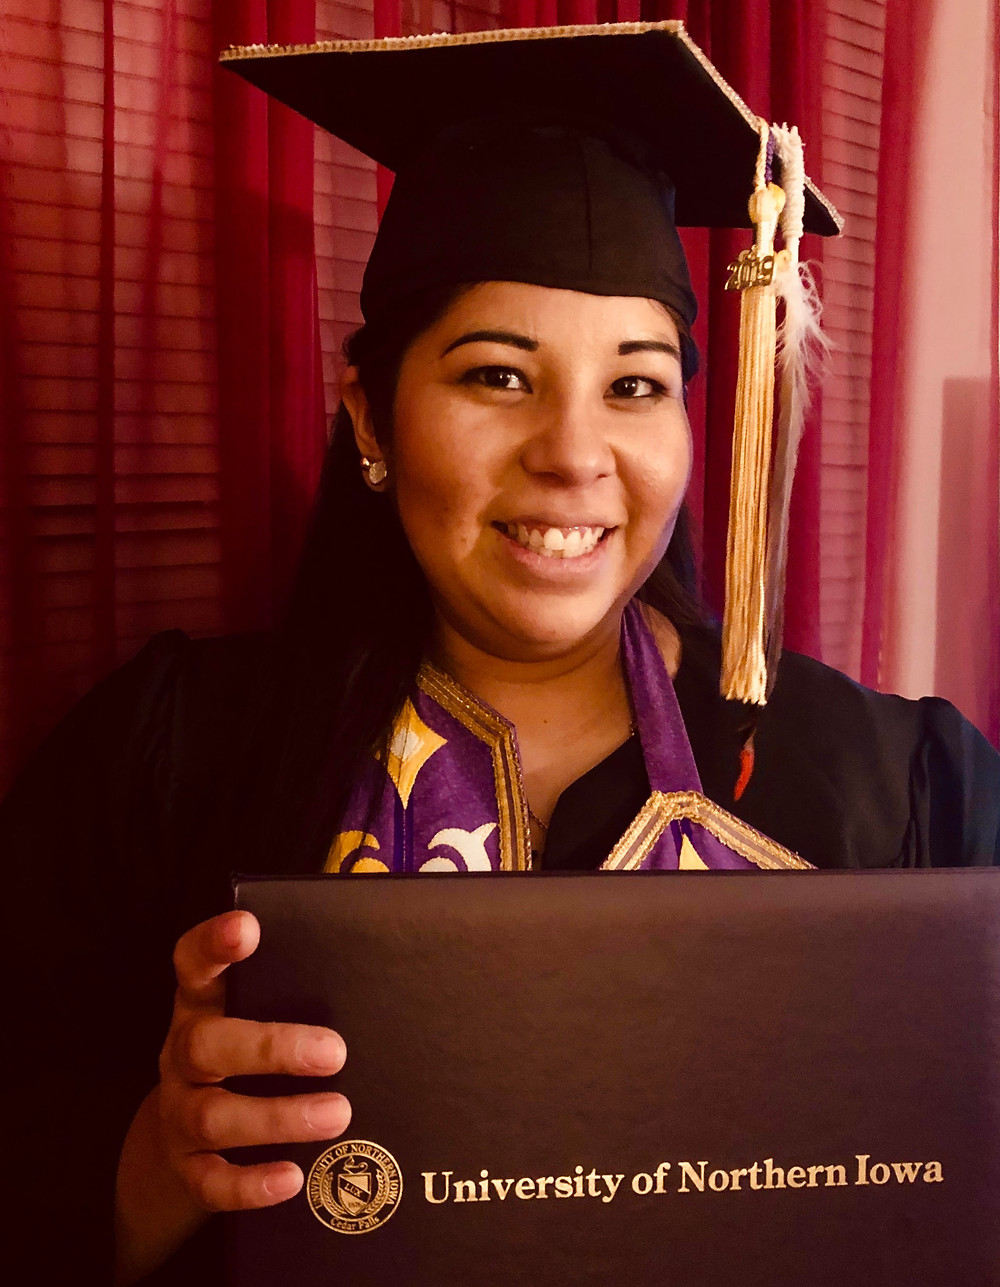 Trisha Caxsep Guwiga Etringer at her graduation ceremony at the University of Northern Iowa in Spring 2019